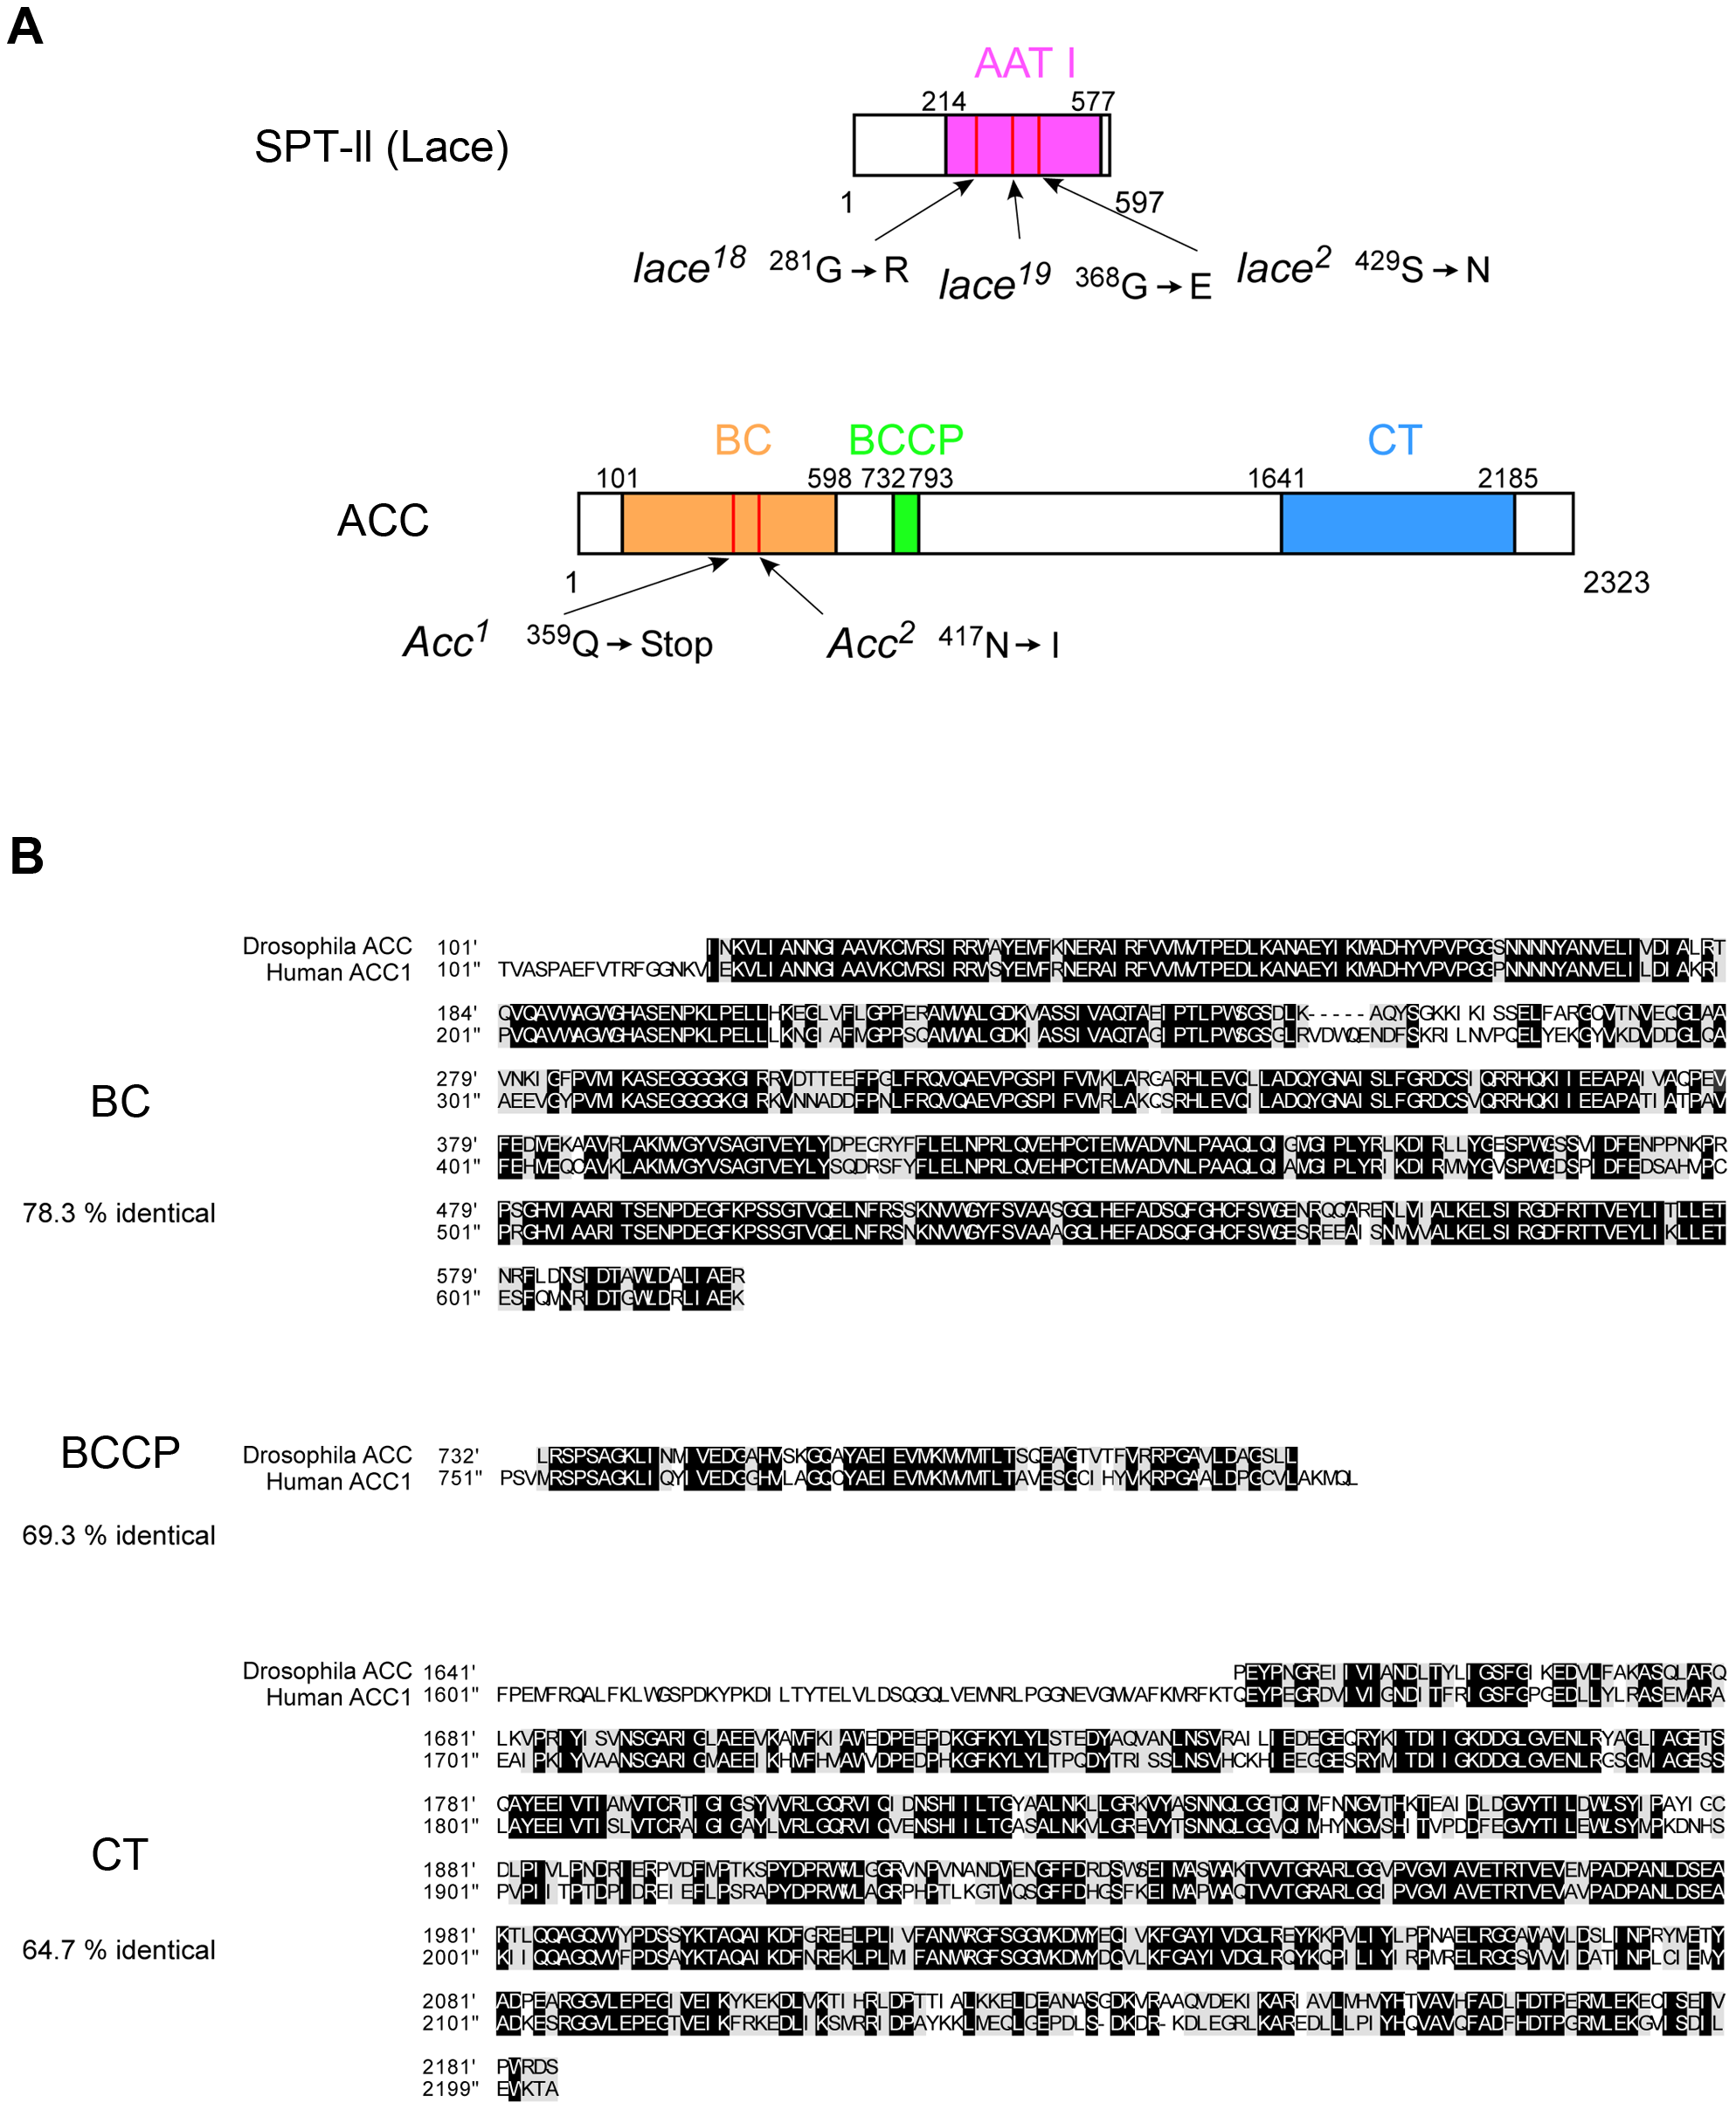 Analysis of molecular lesions associated with <i>lace</i> and <i>ACC</i> mutants and alignment of human and <i>D. melanogaster</i> ACC protein domains.